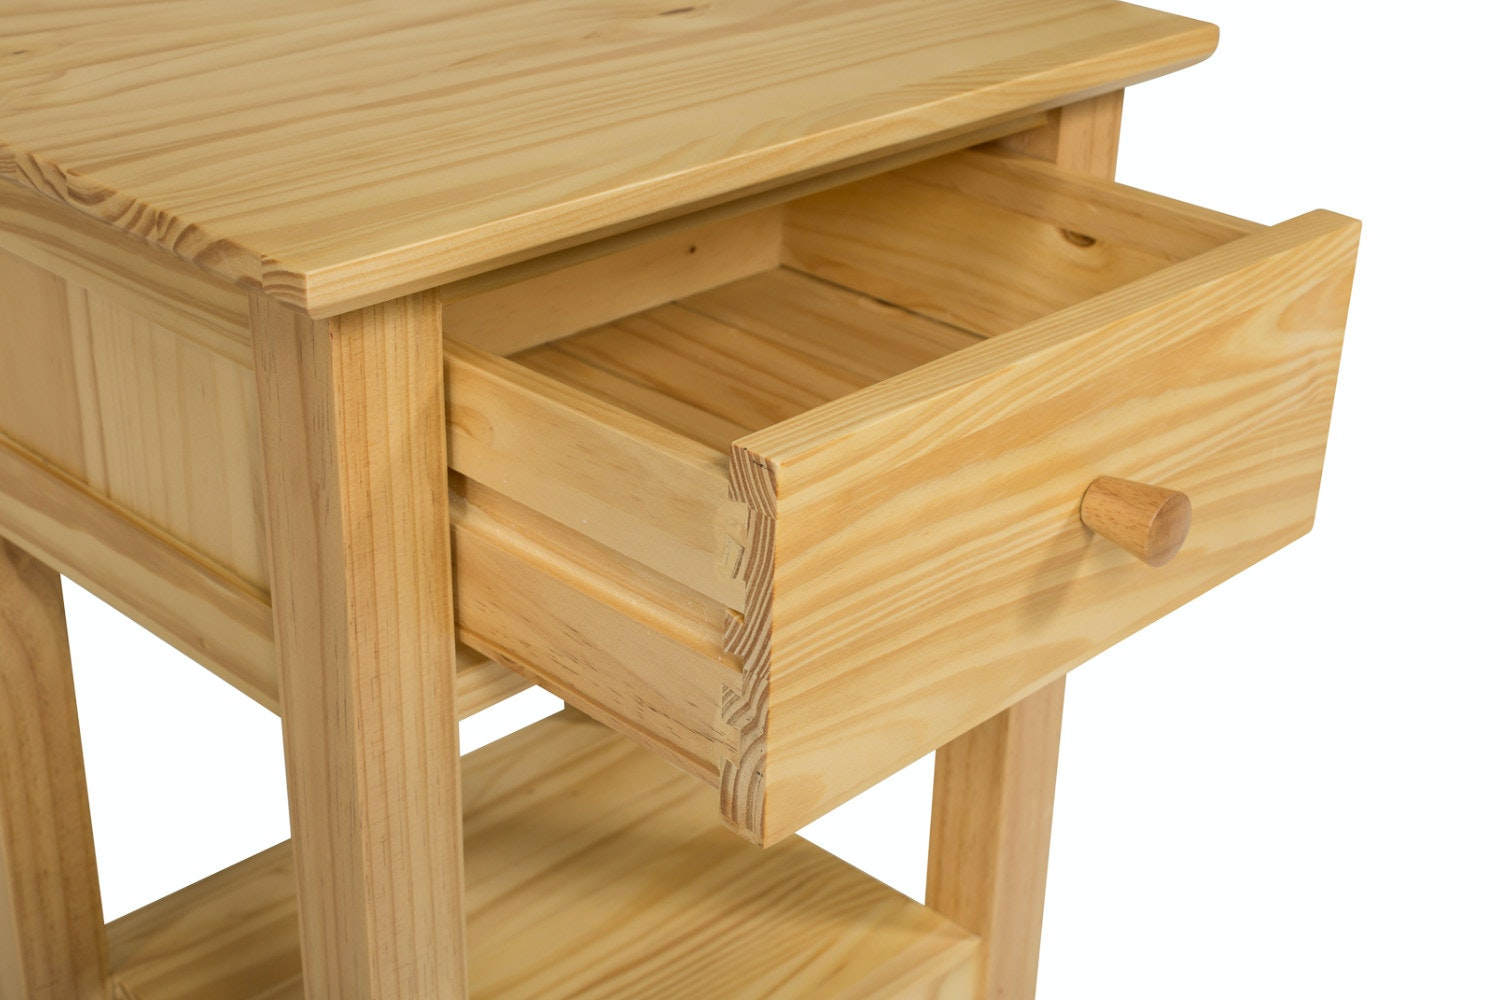 Shaker 1 Drawer Bedside Table | Natural